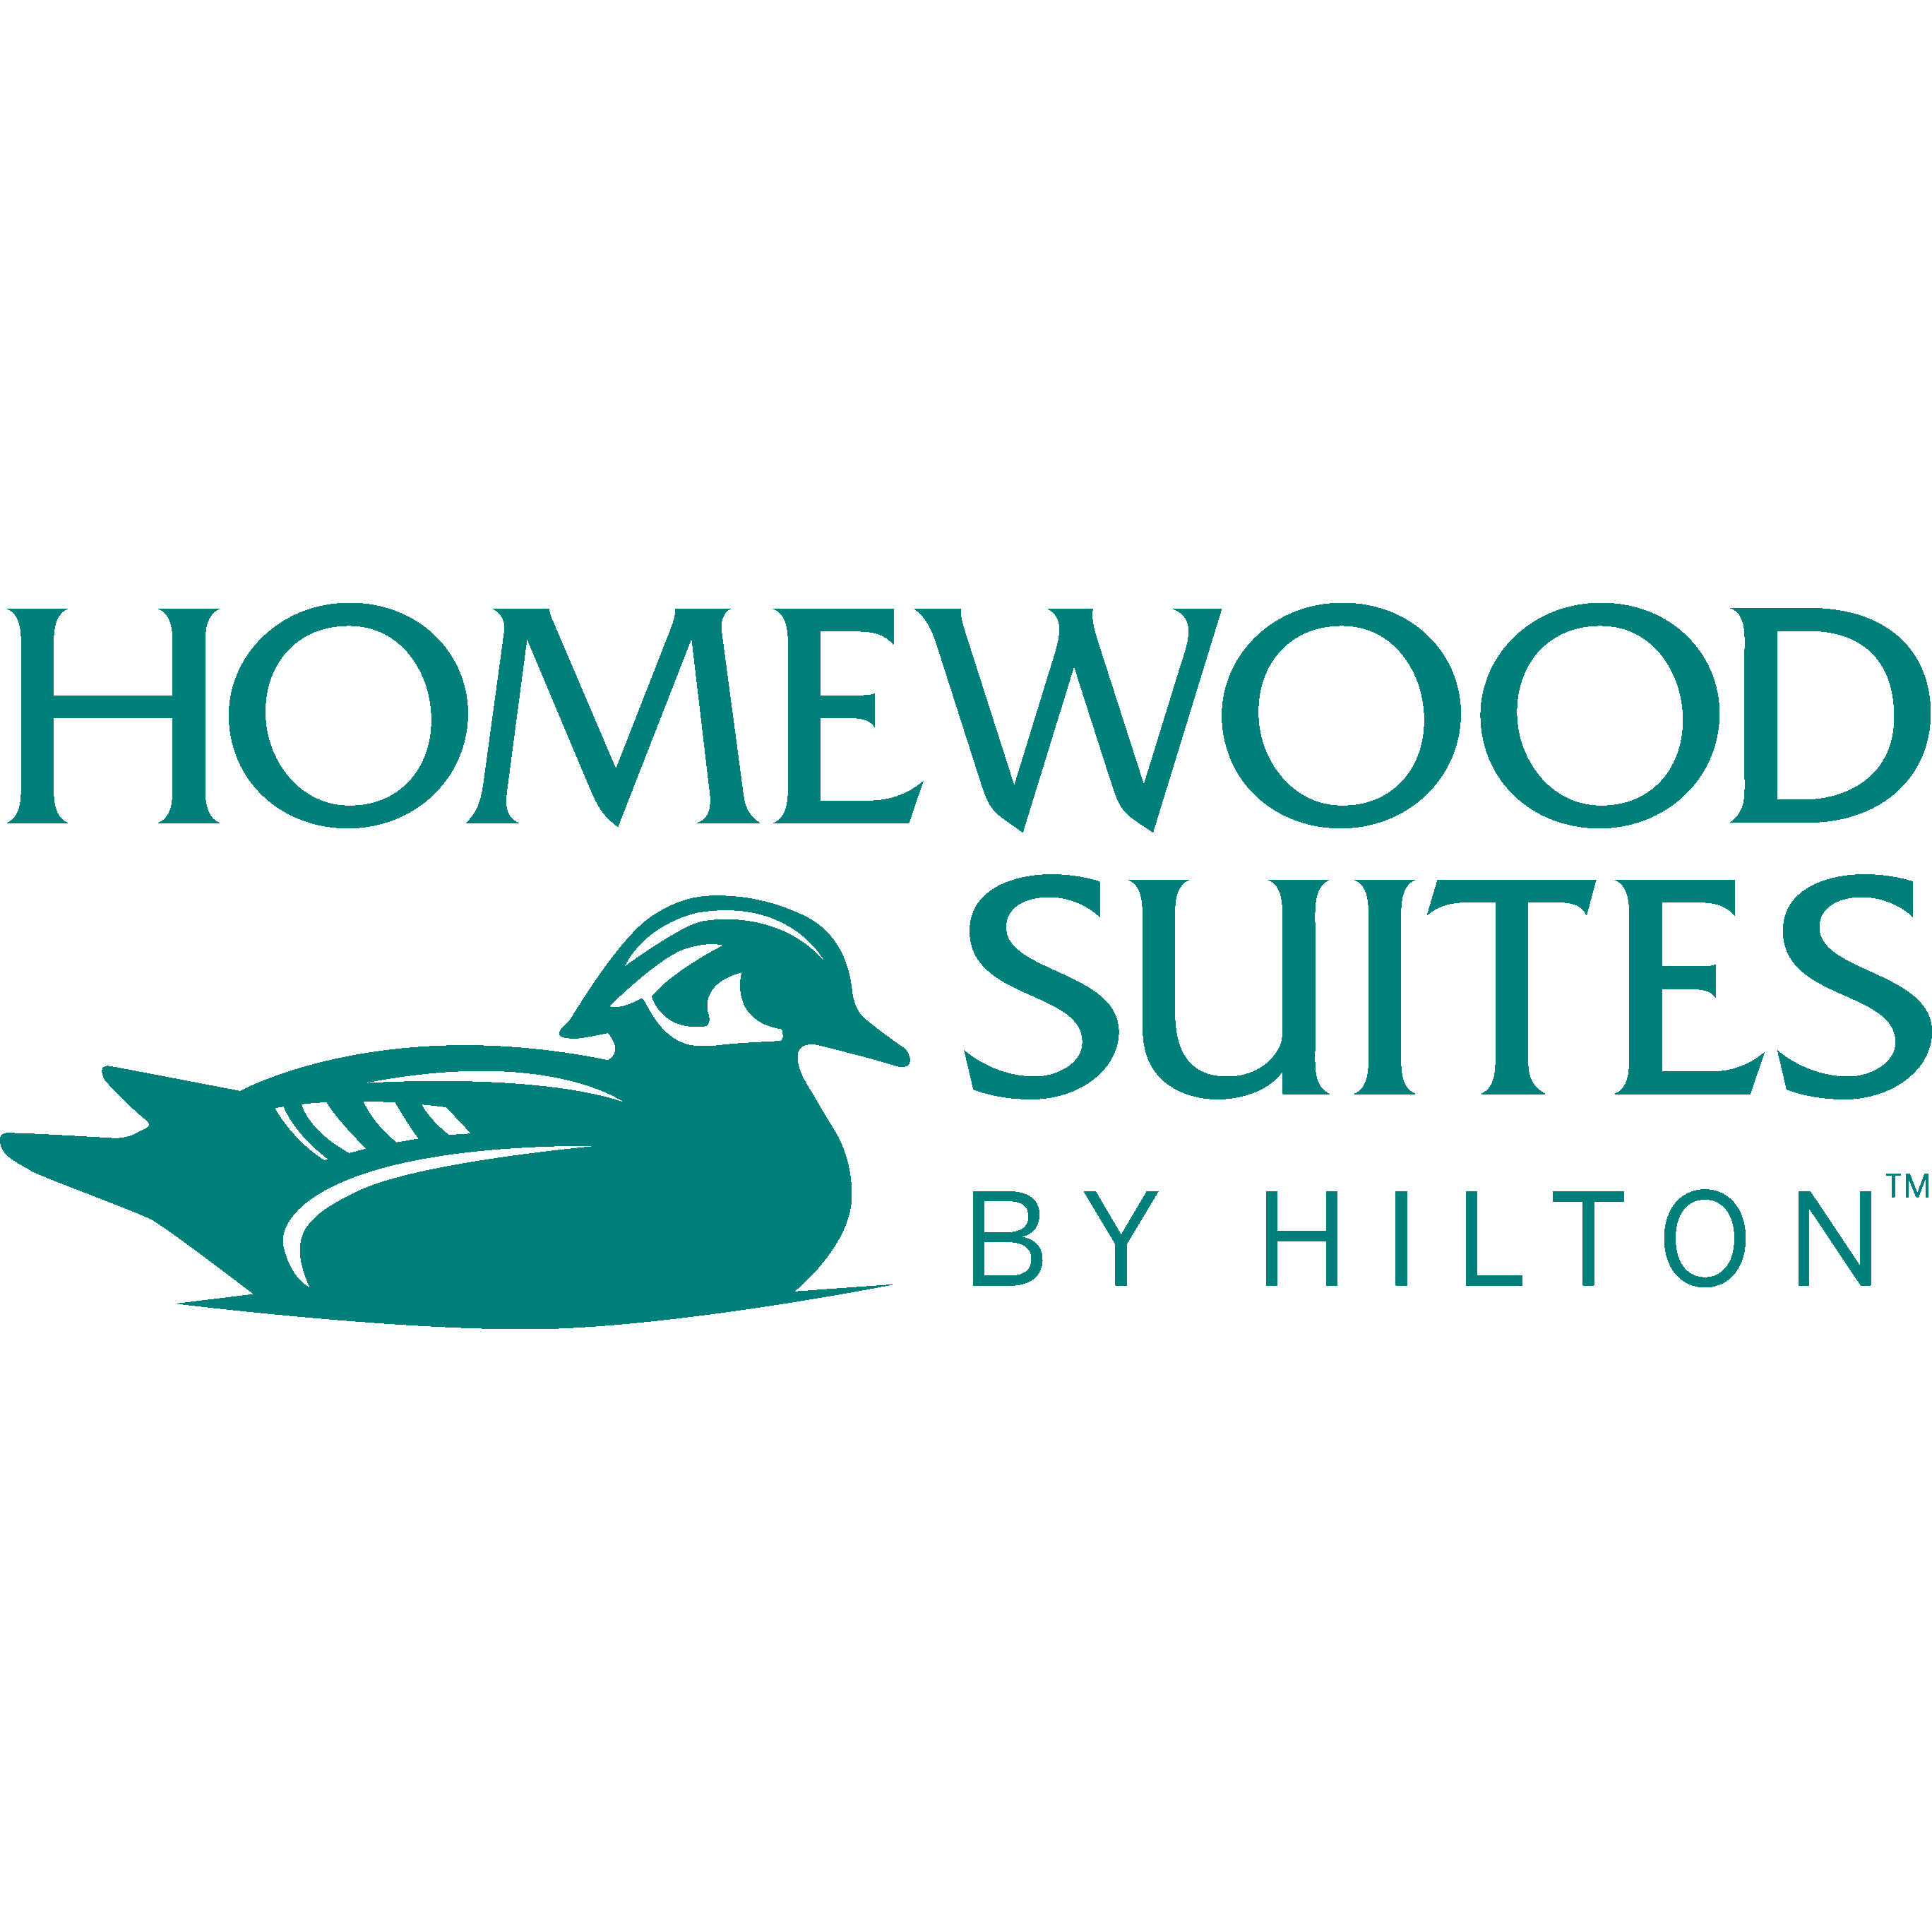 Homewood Suites by Hilton - Syracuse/Carrier Circle